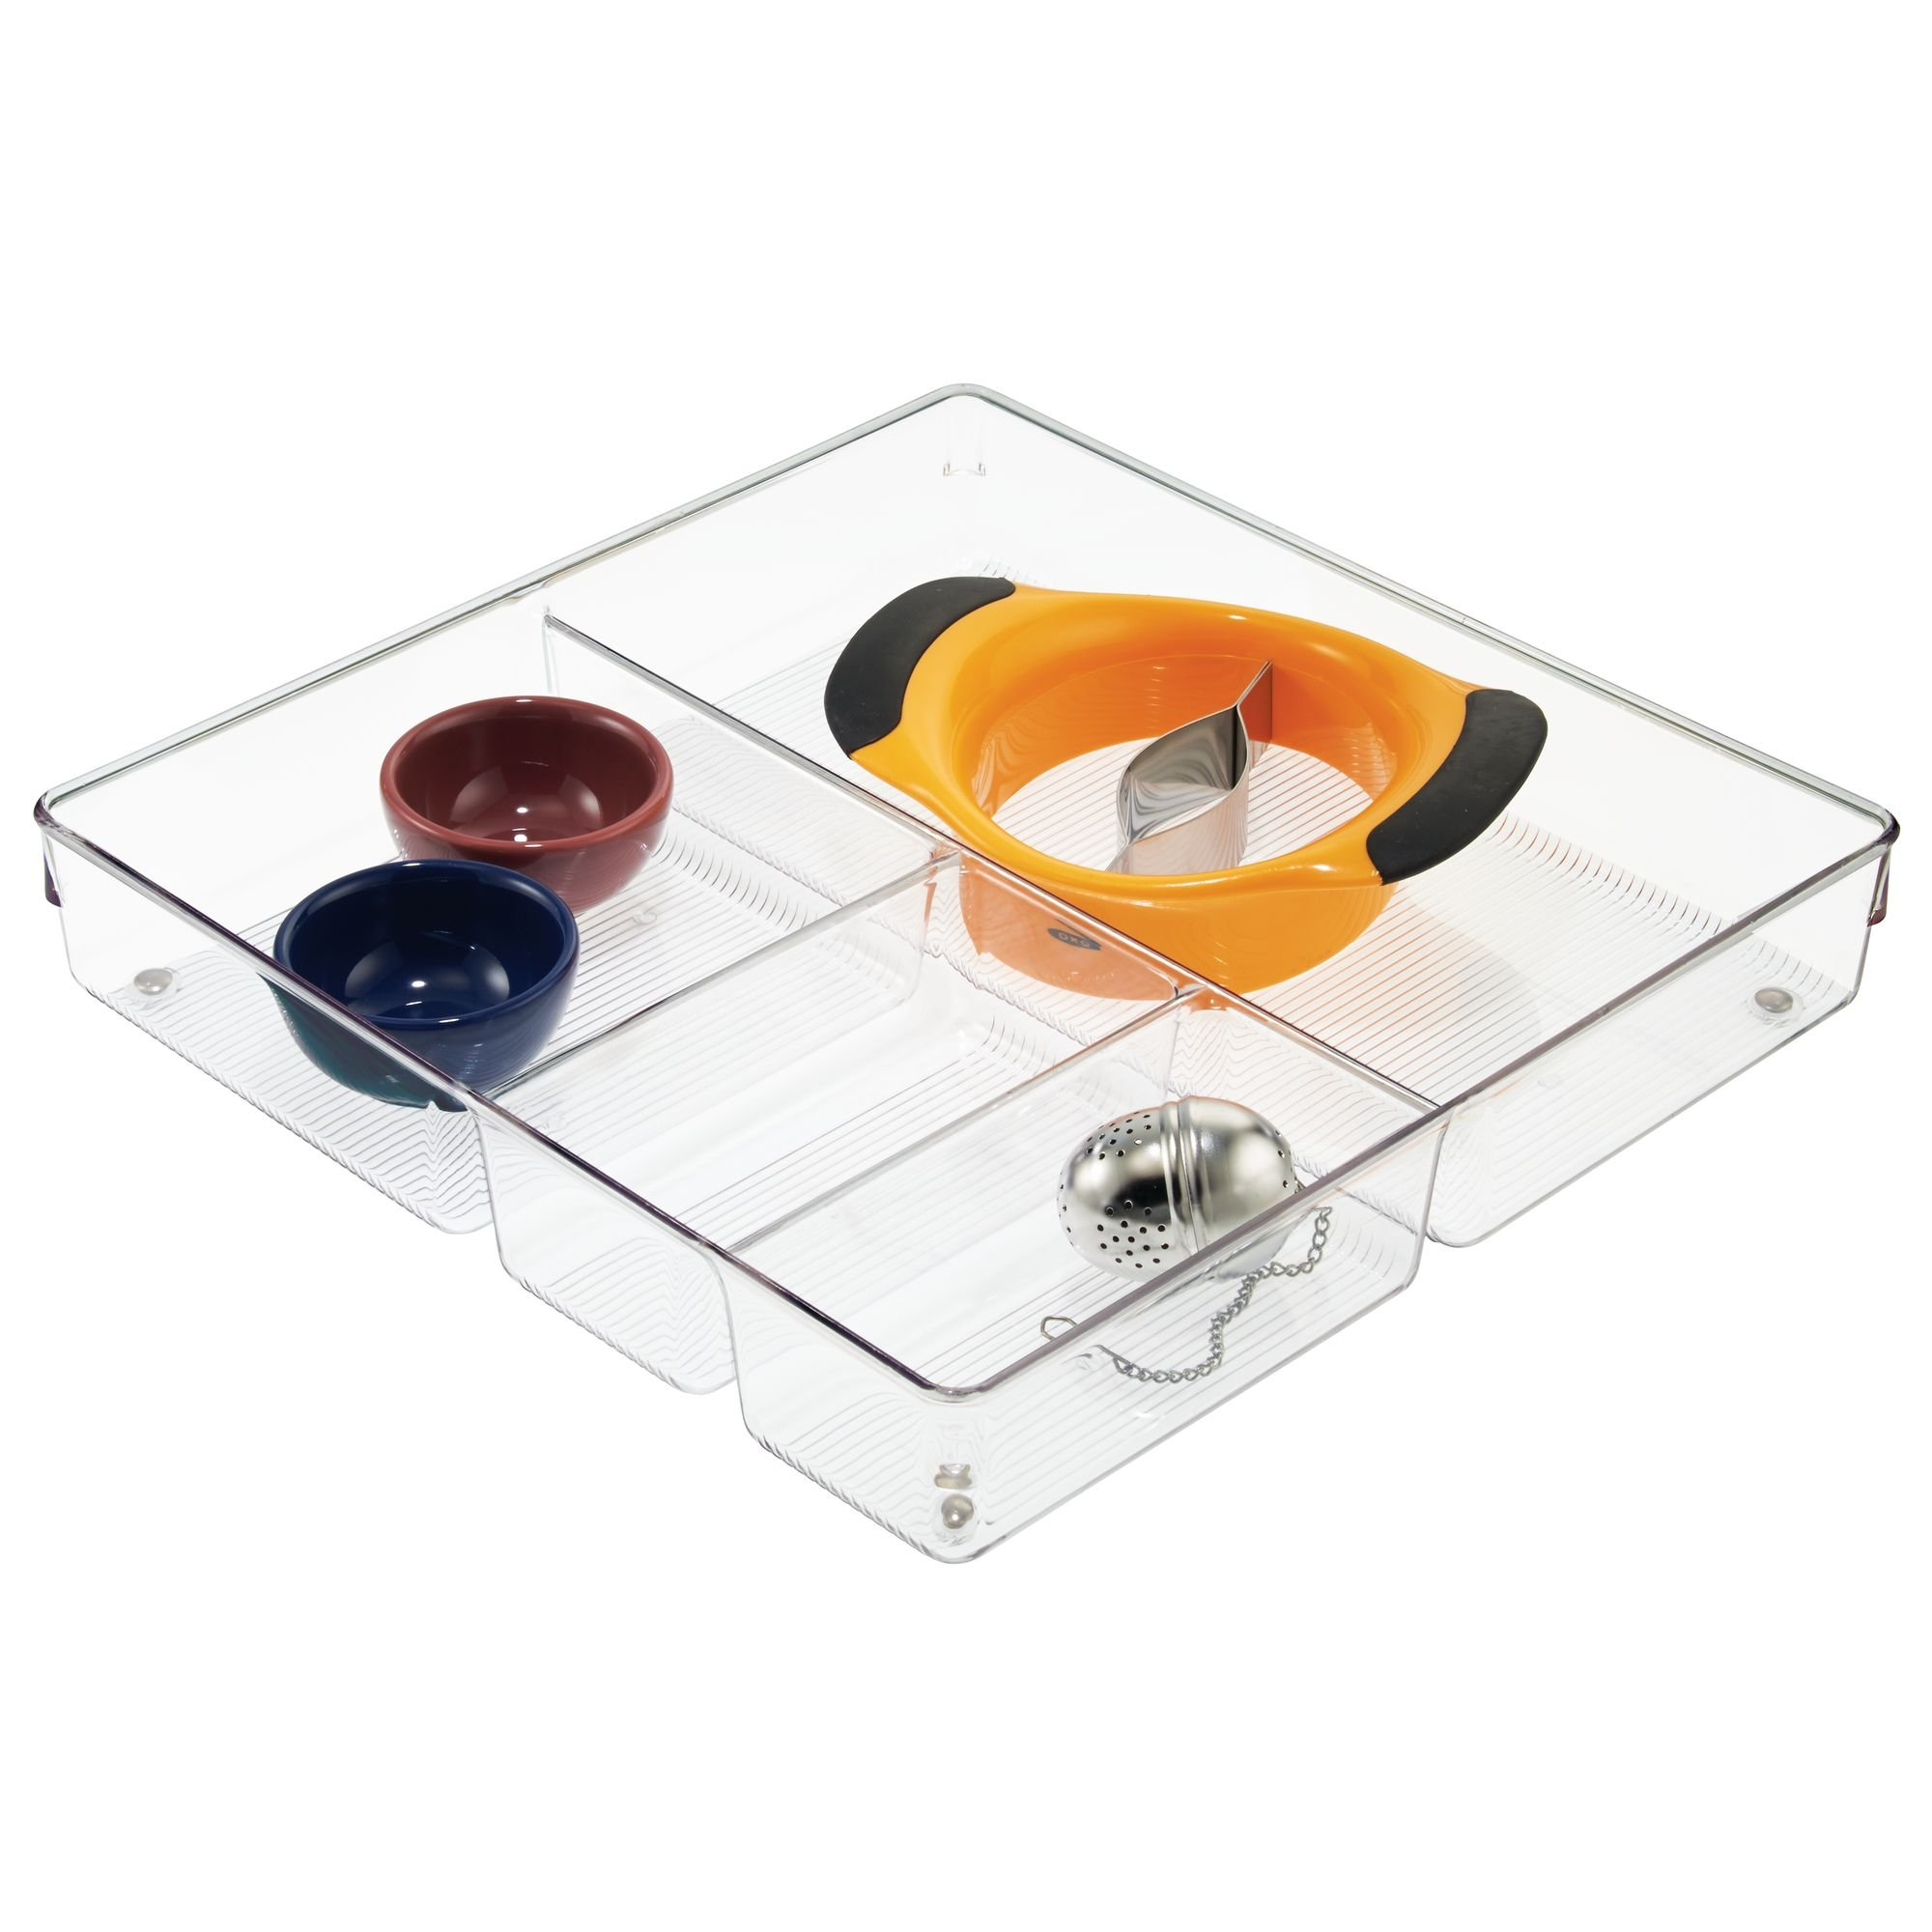 InterDesign Linus Plastic Grand Divided Organizer, Storage Container for Kitchen, Vanity, Bathroom Drawers, 12'' x 12'' x 2'' Clear